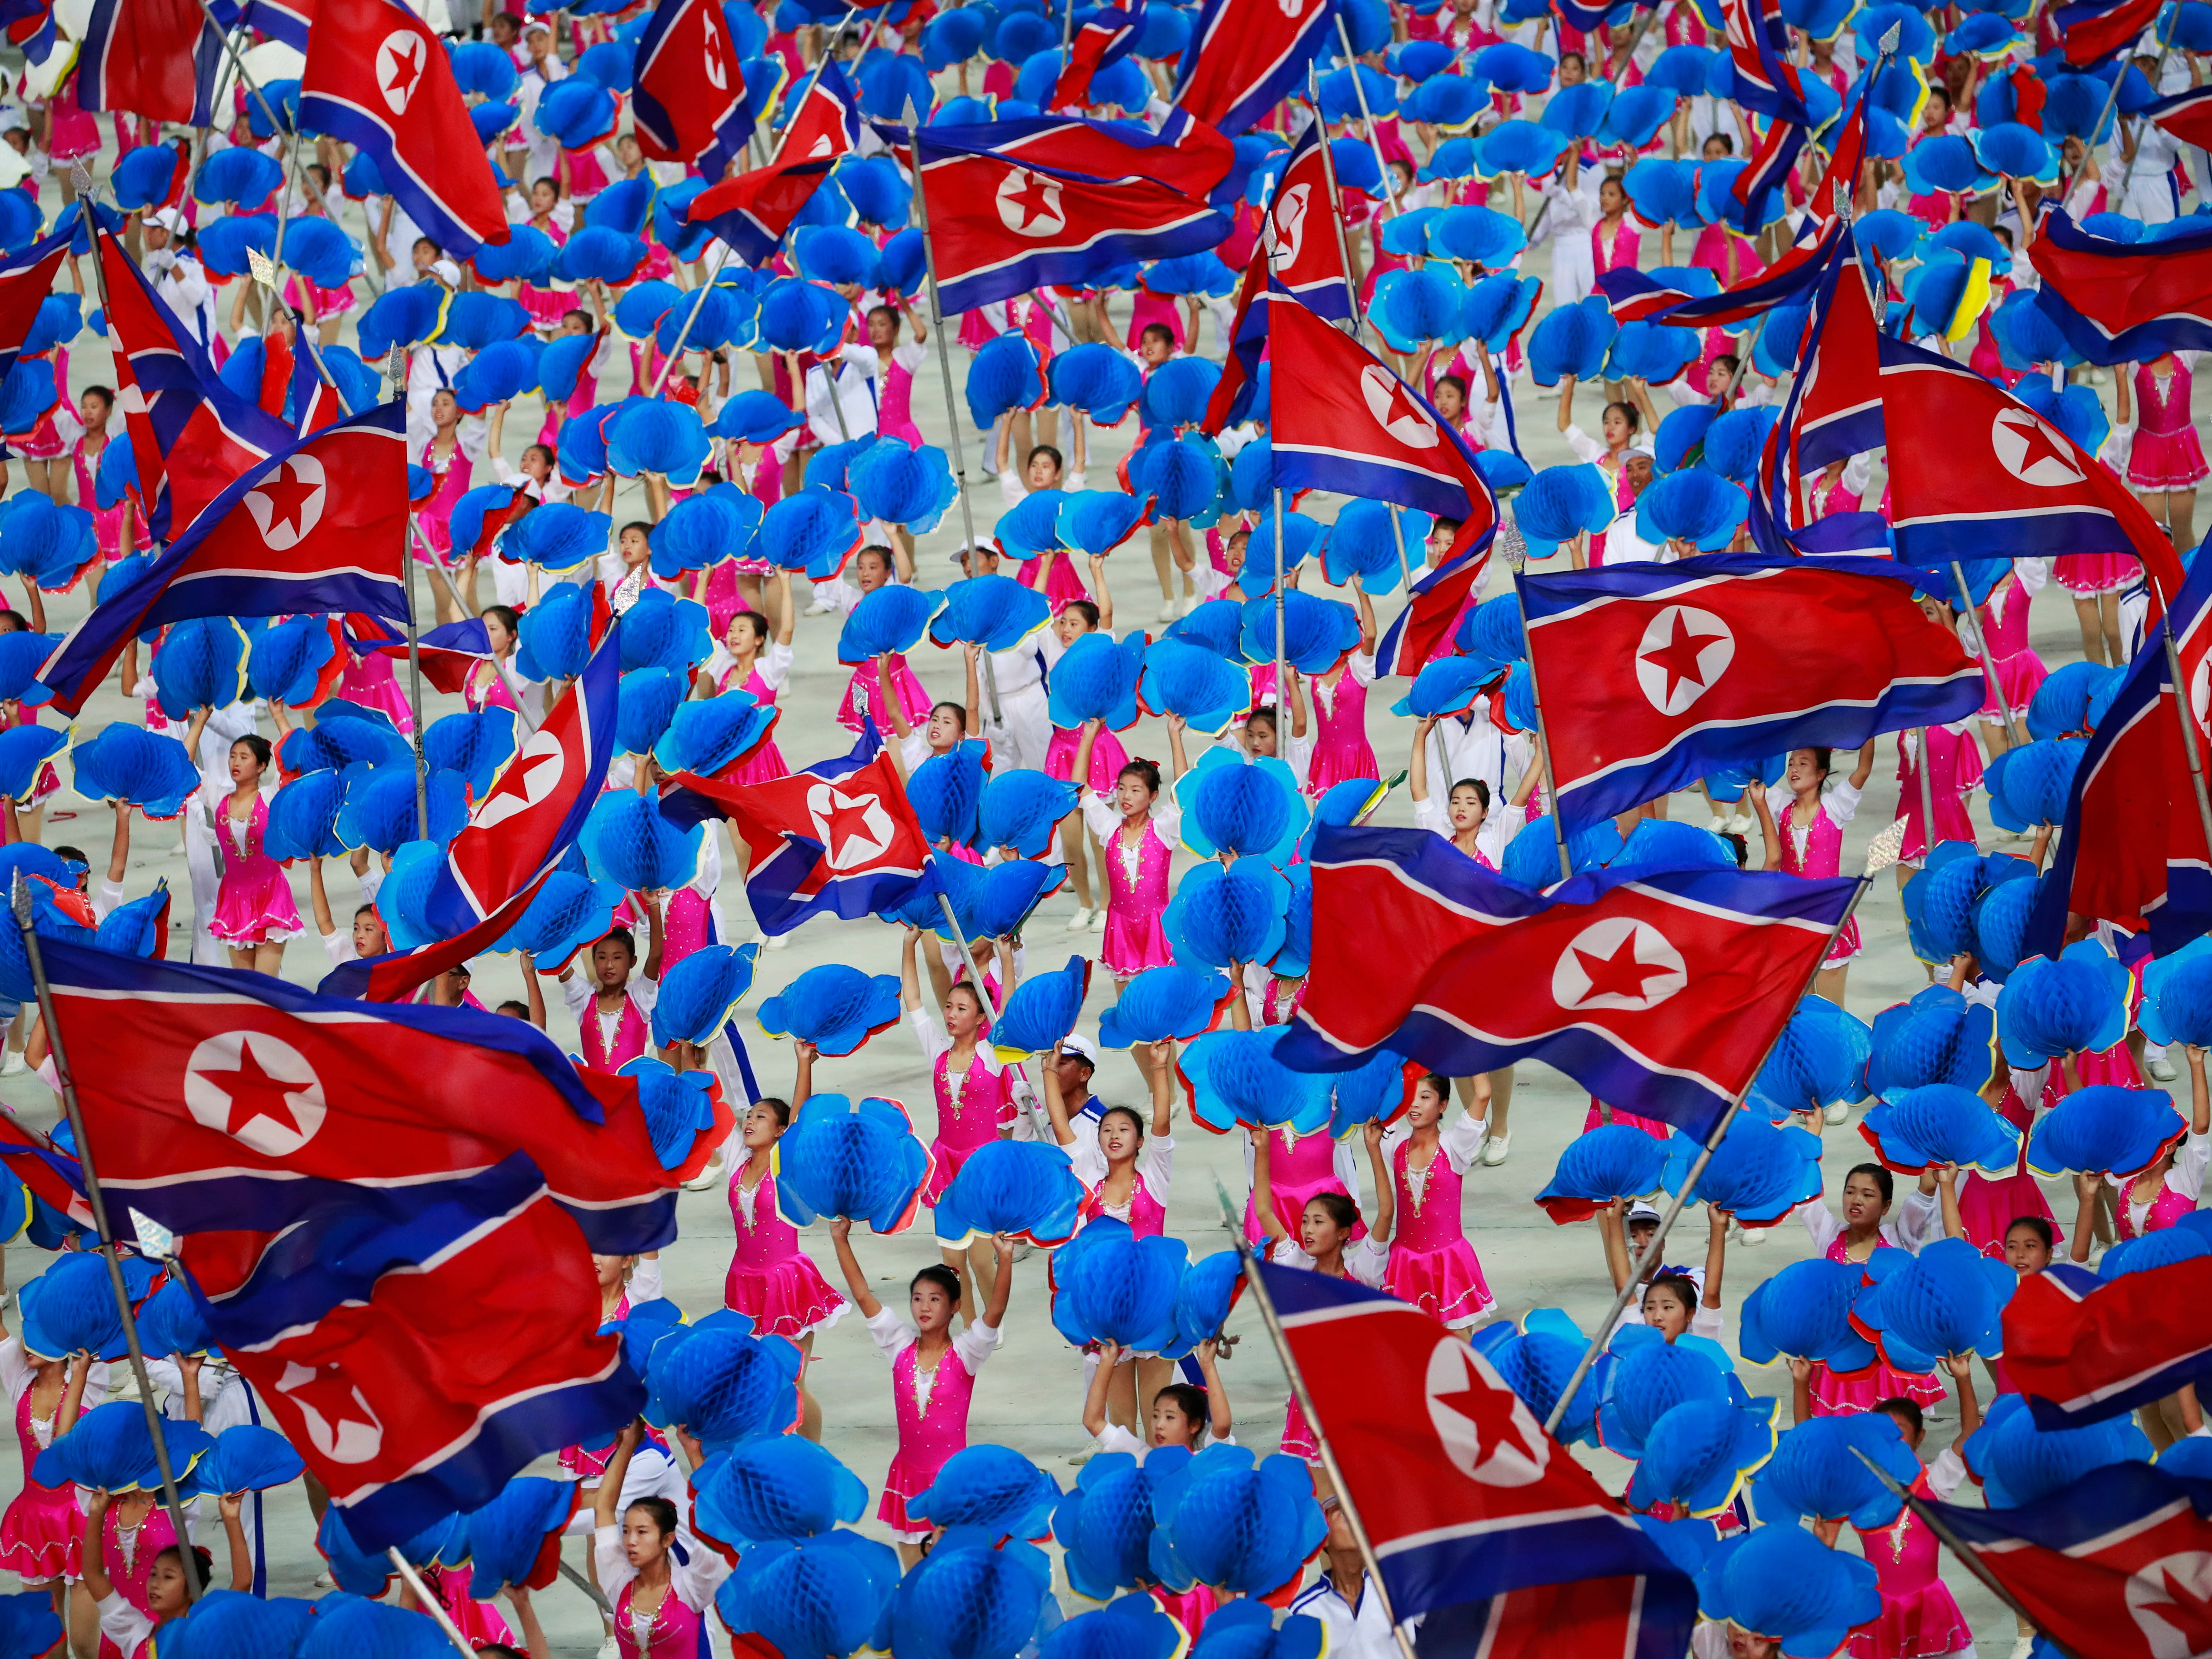 North Korean dancers perform in the Arirang Mass games celebrating the National Day and 70th anniversary of its Foundation in Pyongyang, North Korea on Sept. 9, 2018.